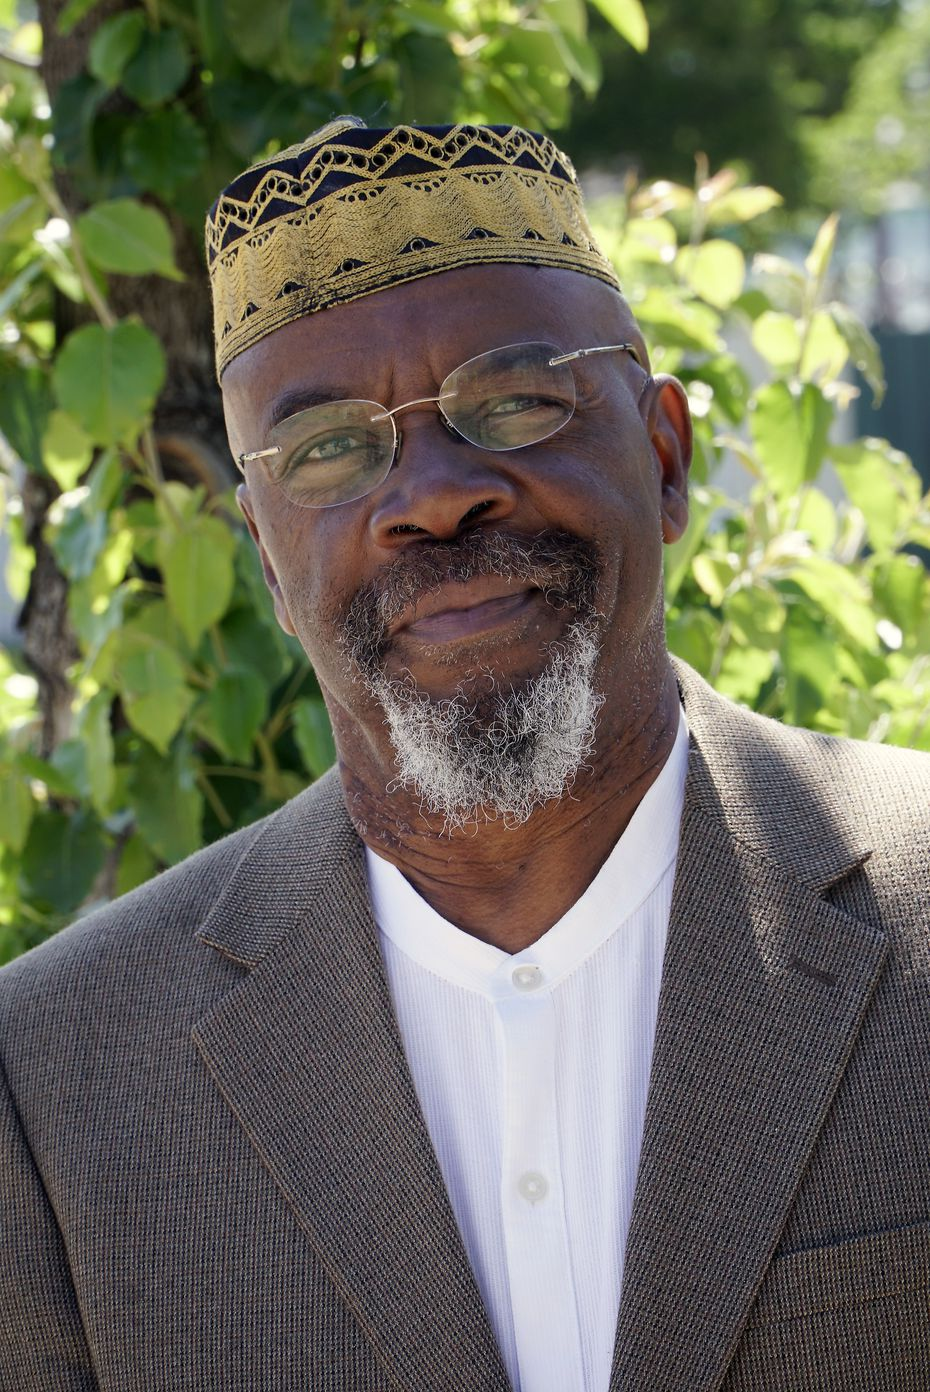 Imam Khalid Shaheed pioneered social justice efforts at Masjid Al-Islam. The Dallas mosque has been providing food and respite for 500 people every weekend for more than a decade.